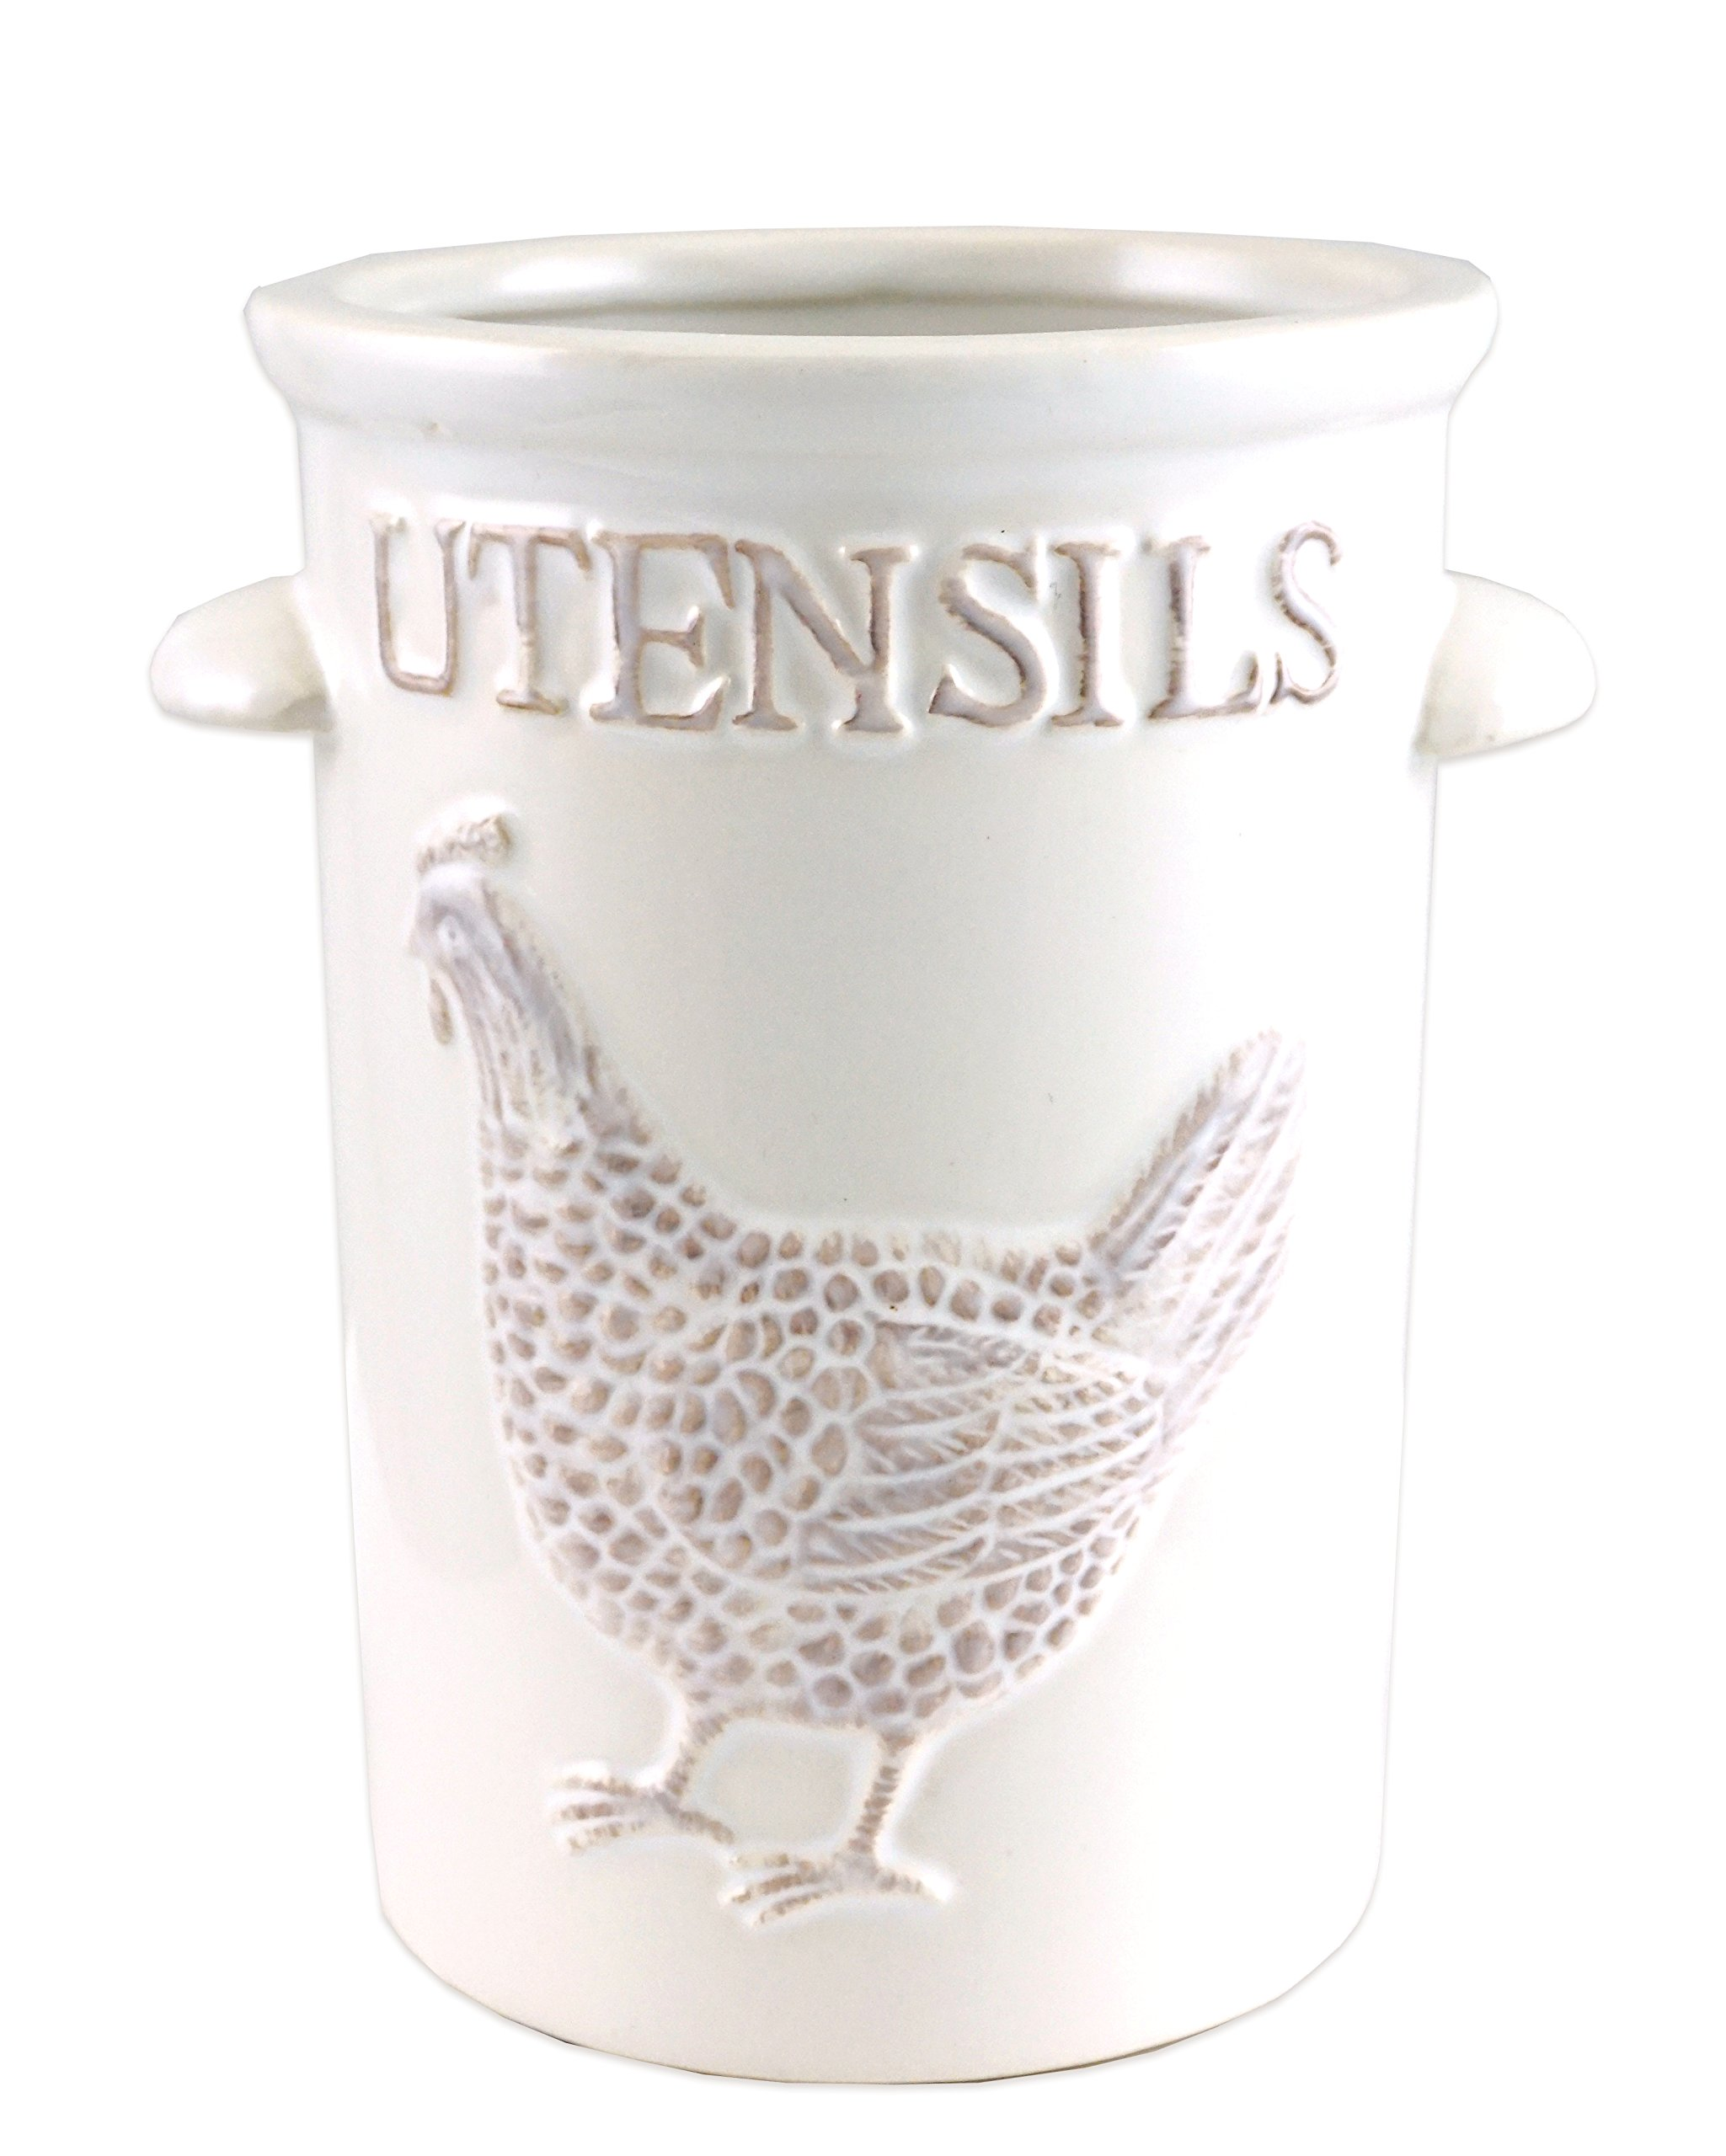 Farmhouse Rooster Kitchen Utensil Ceramic Holder by Party Explosions